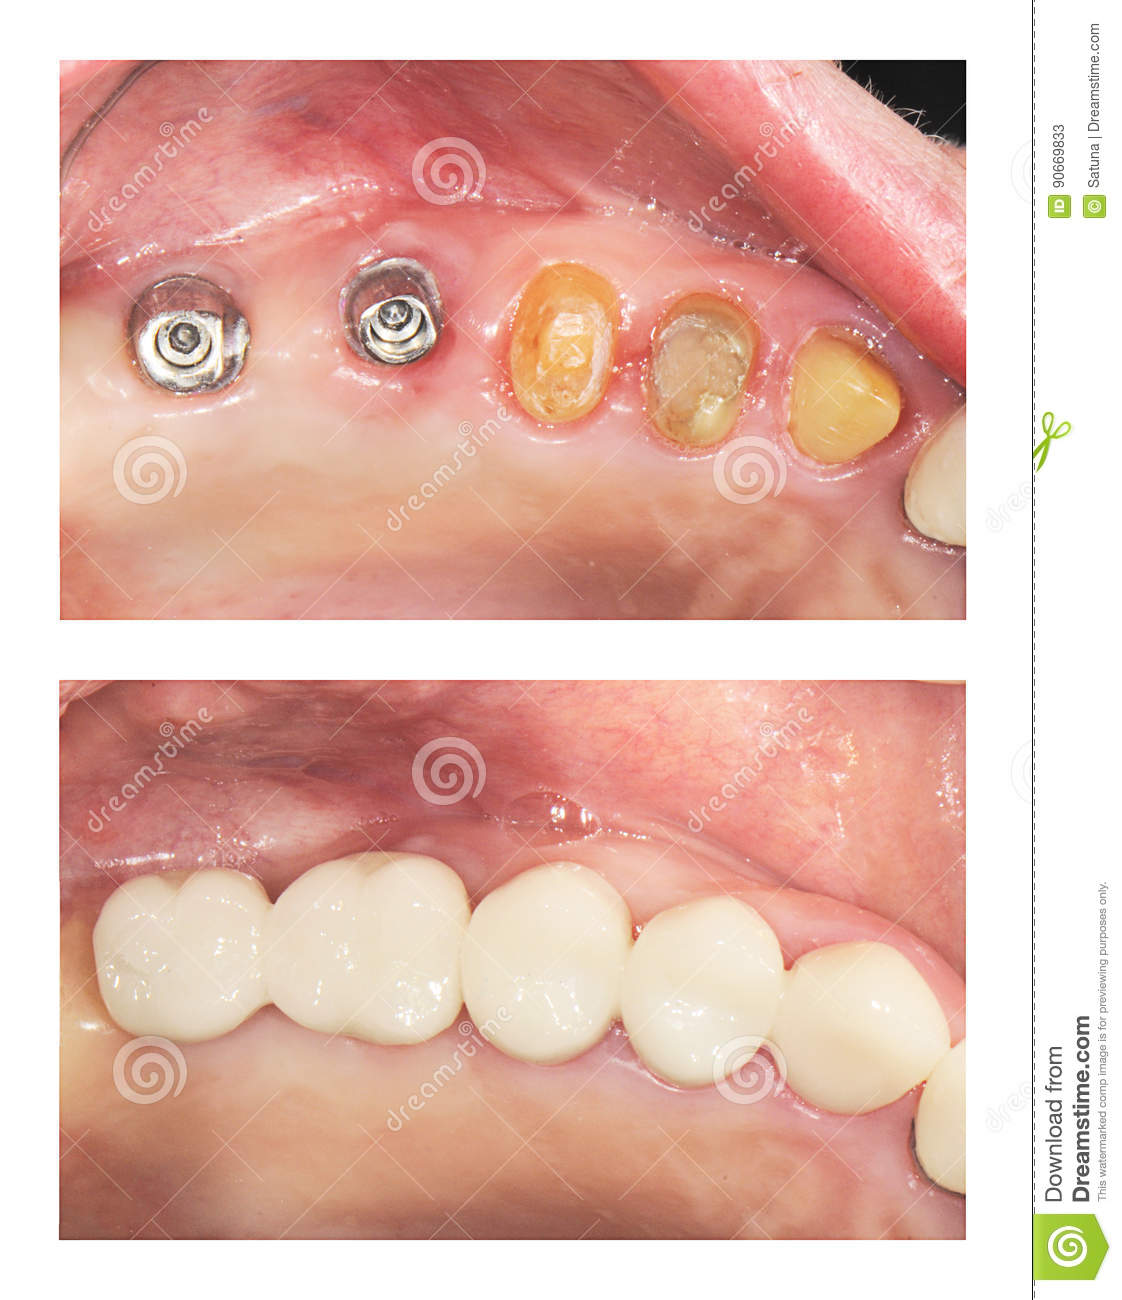 Before and after - implants and crowns